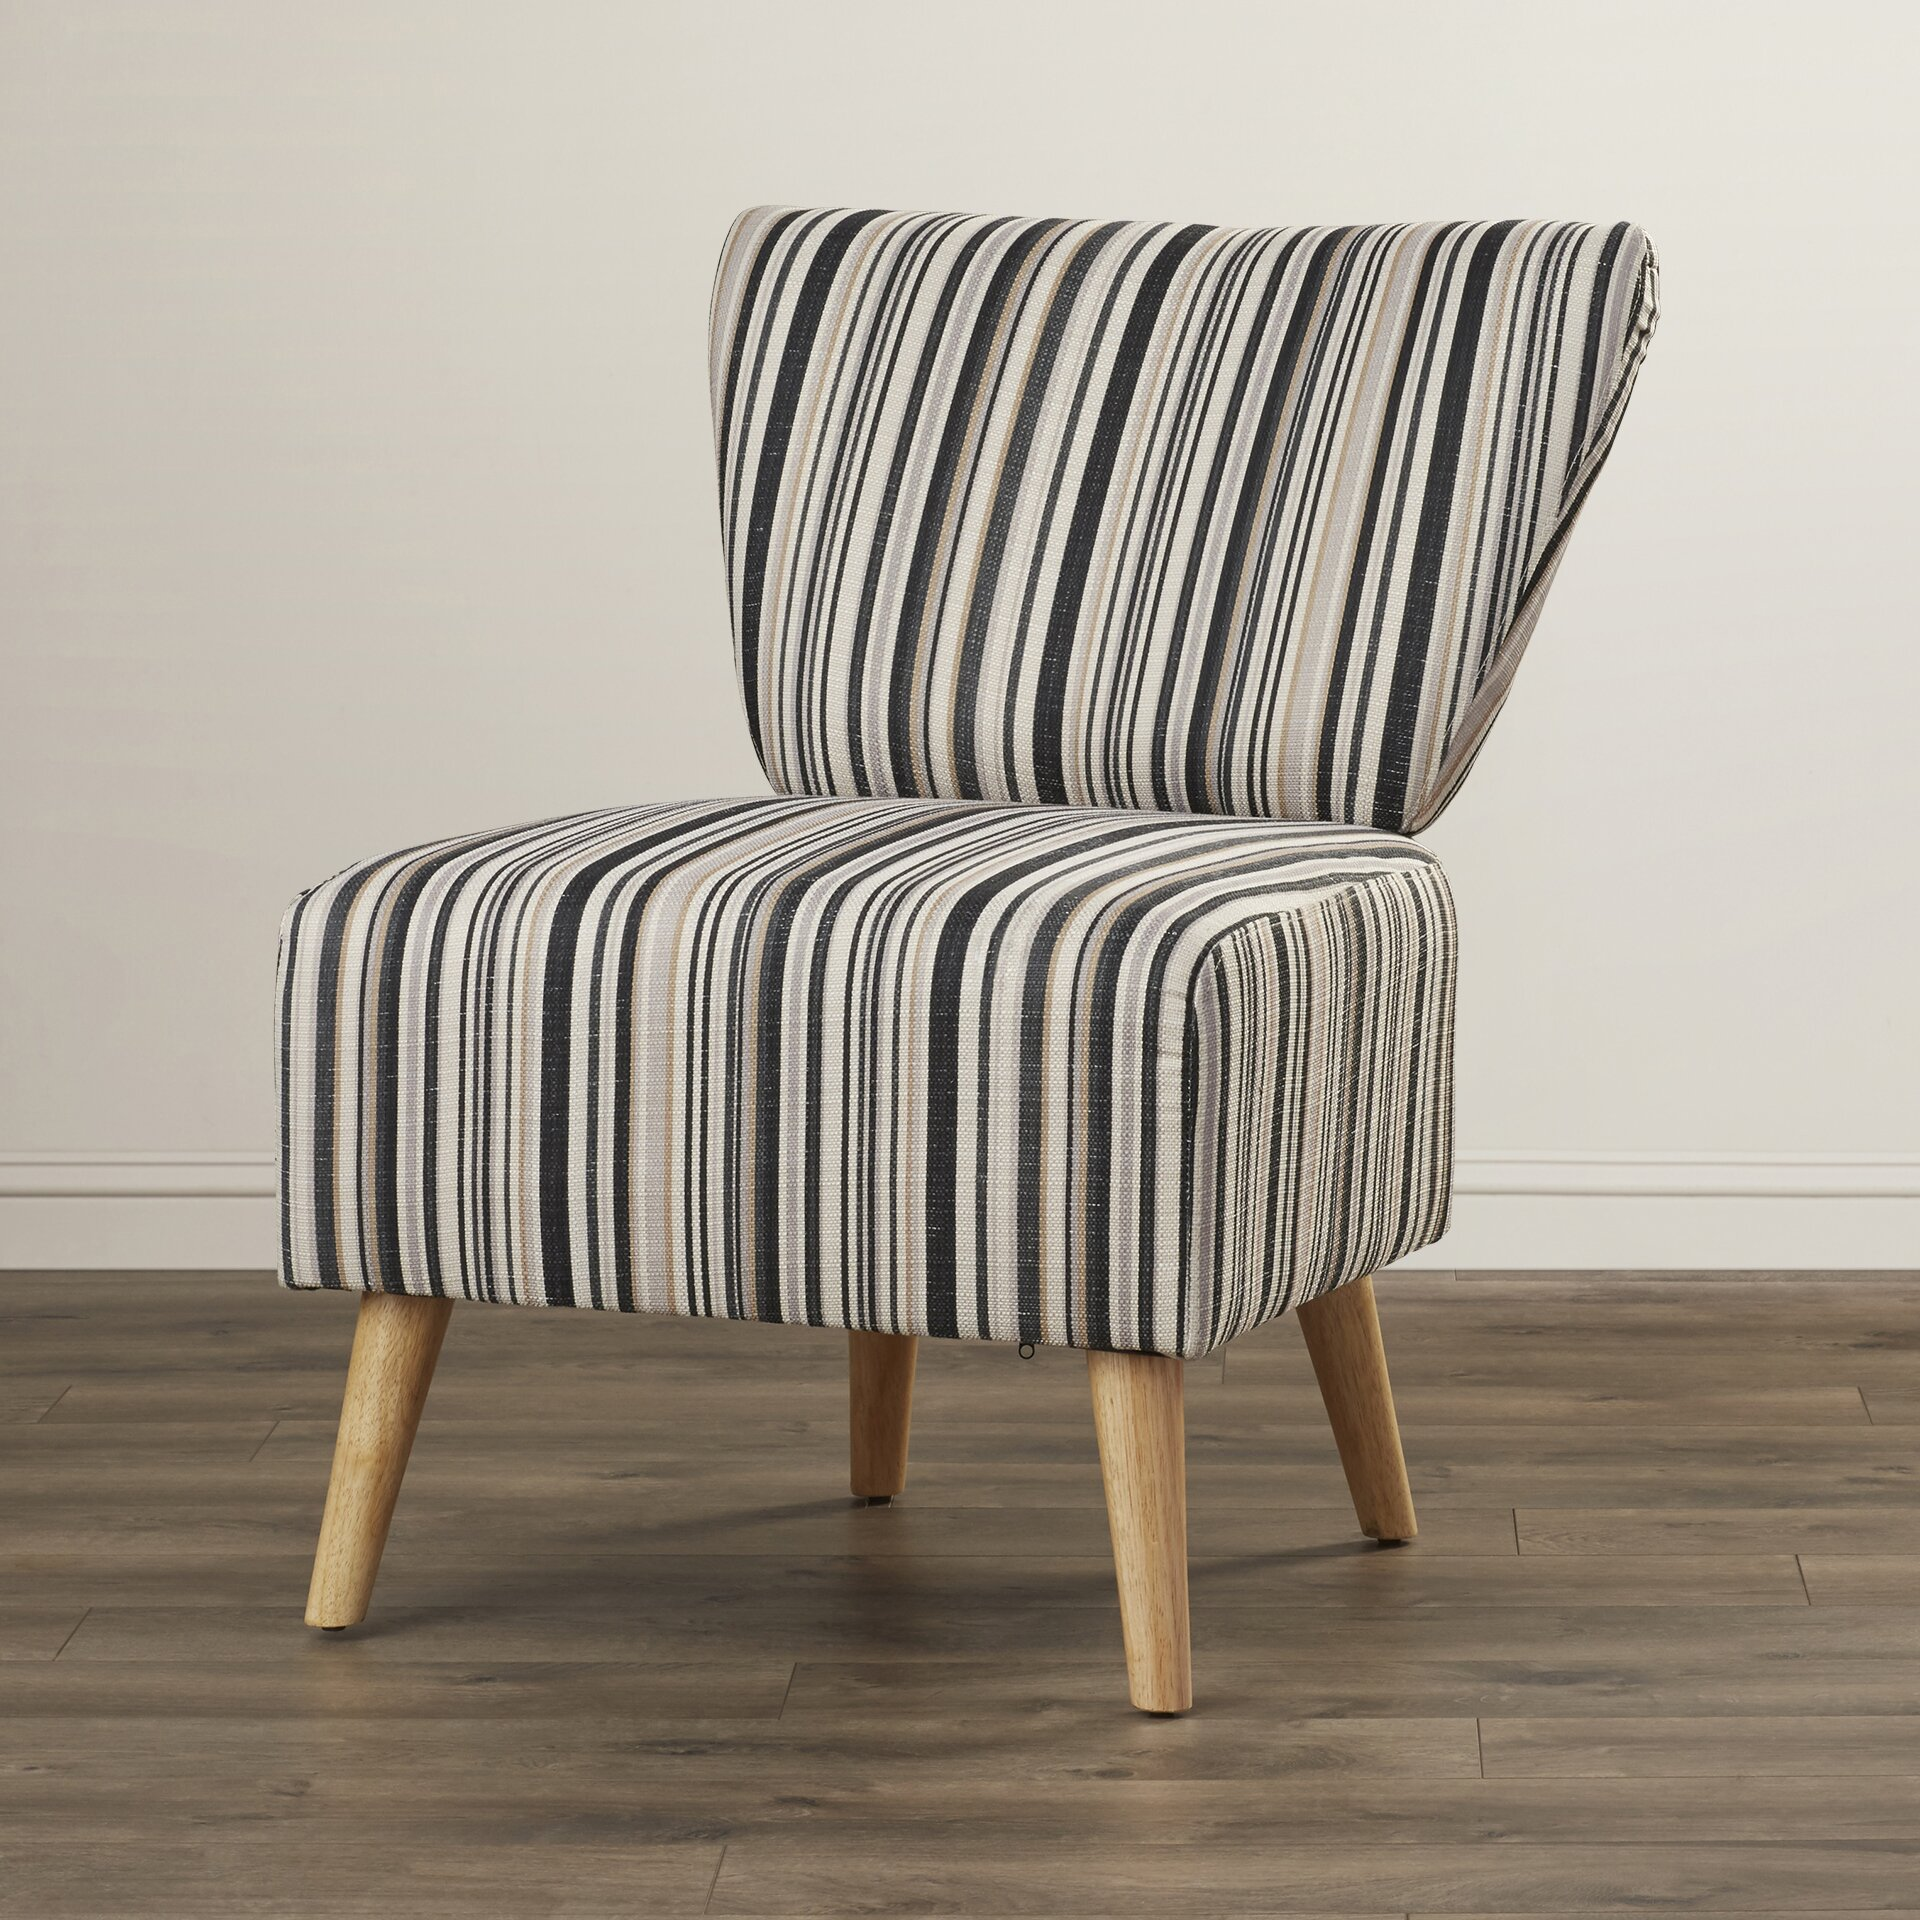 ... Langley Street Honolulu Stripe Print Slipper Chair · Plans For Outdoor  ...